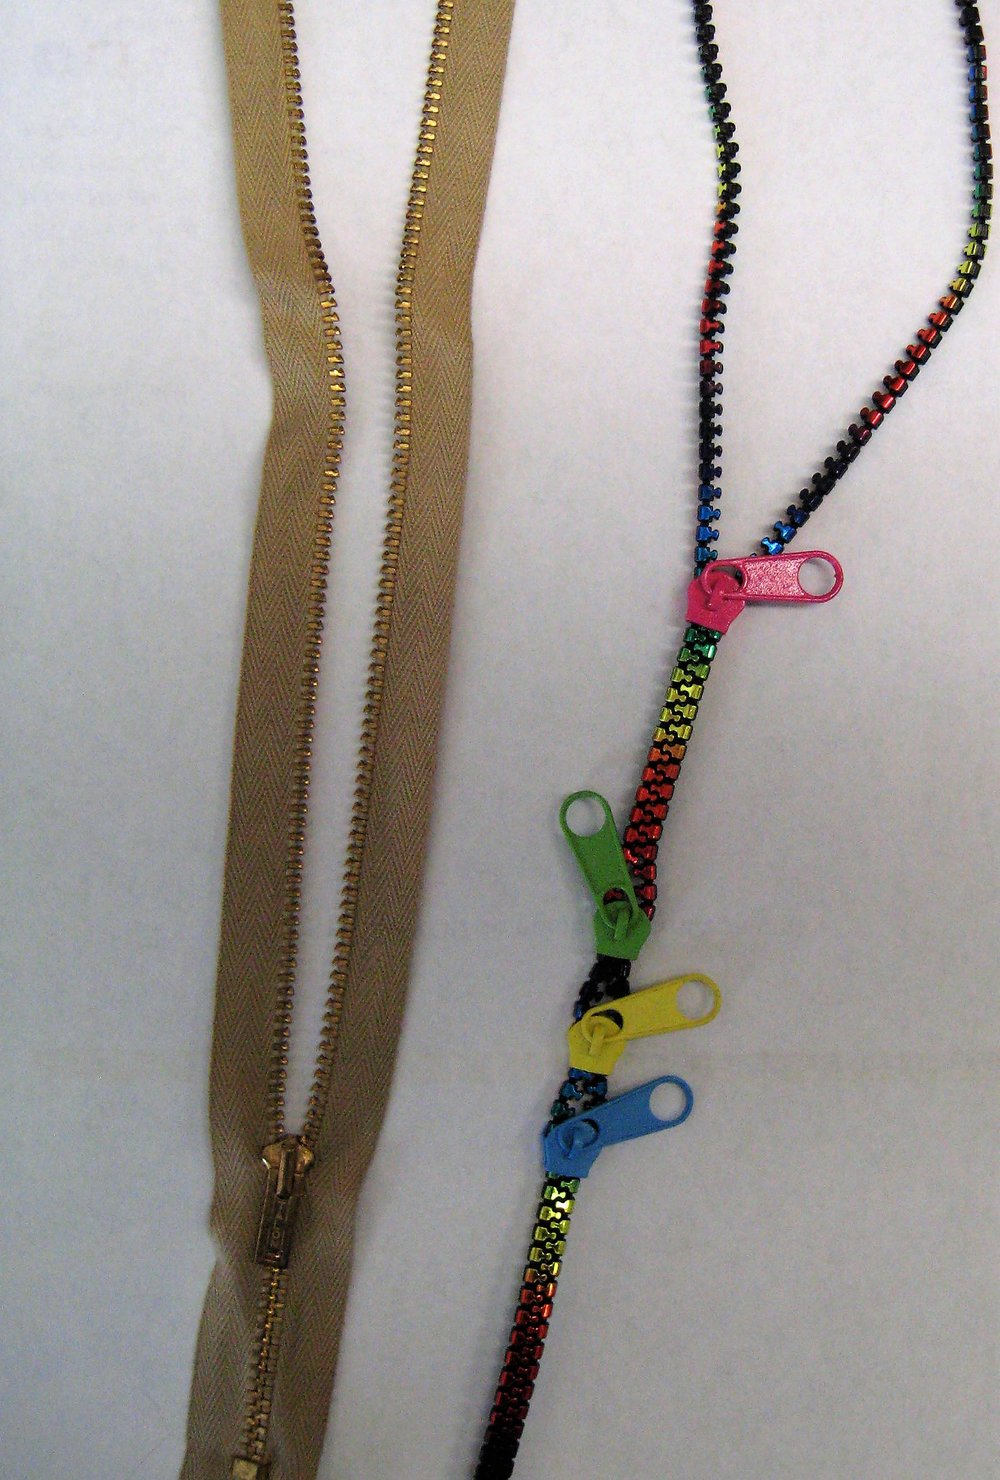 The zipper was hand tacked to the quilt when everything else was finished. I originally wanted to use the beige zipper on the left because I loved the metal teeth but the tape part was too wide and I couldn't see it fitting into the face area. The other zipper is something that I had in my stash. I think it is meant to be a bracelet. I chose to use the pink zipper pull because it is my favorite color.   When the quilt was finished I learned to love the idea behind the quilt.